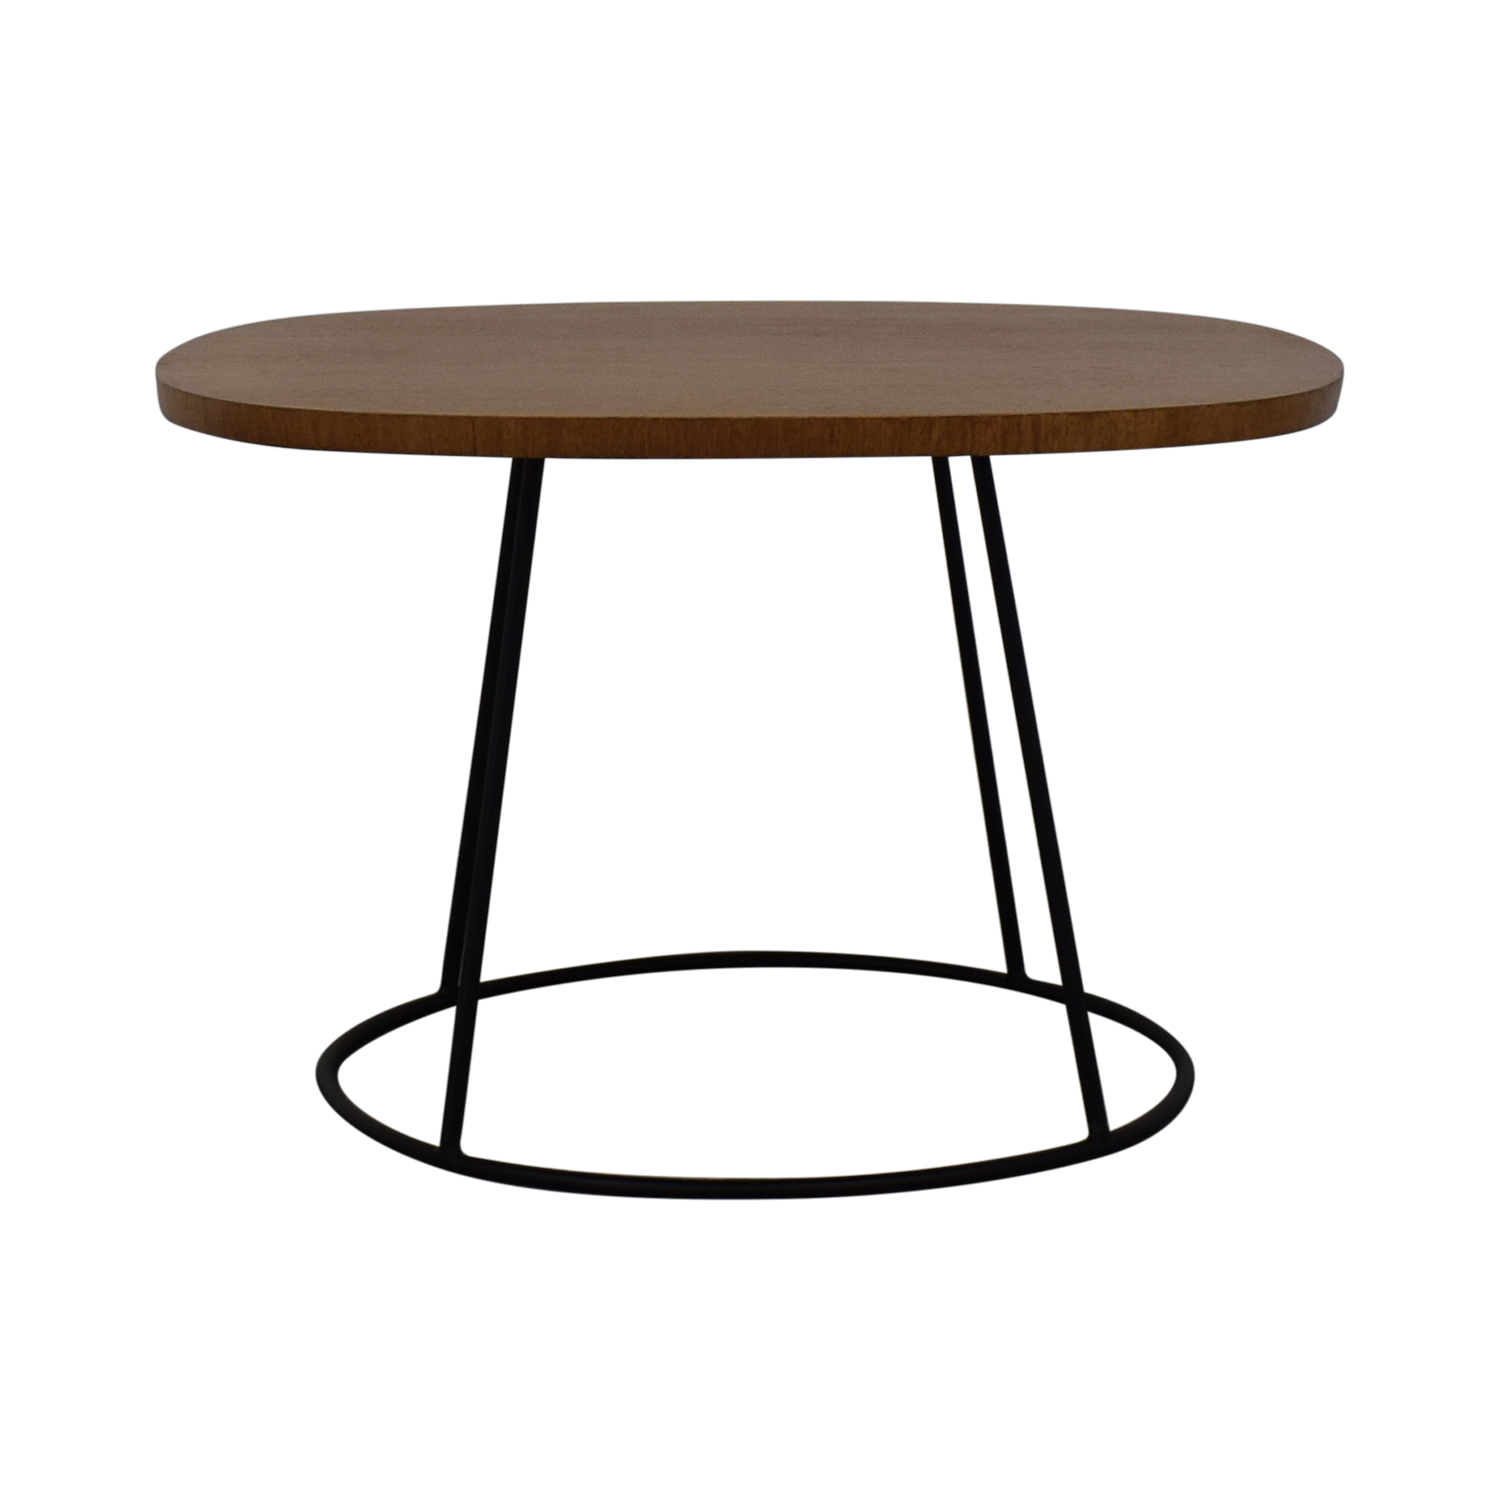 Zientte Sierra Round Cornered Square Side Table Zientte